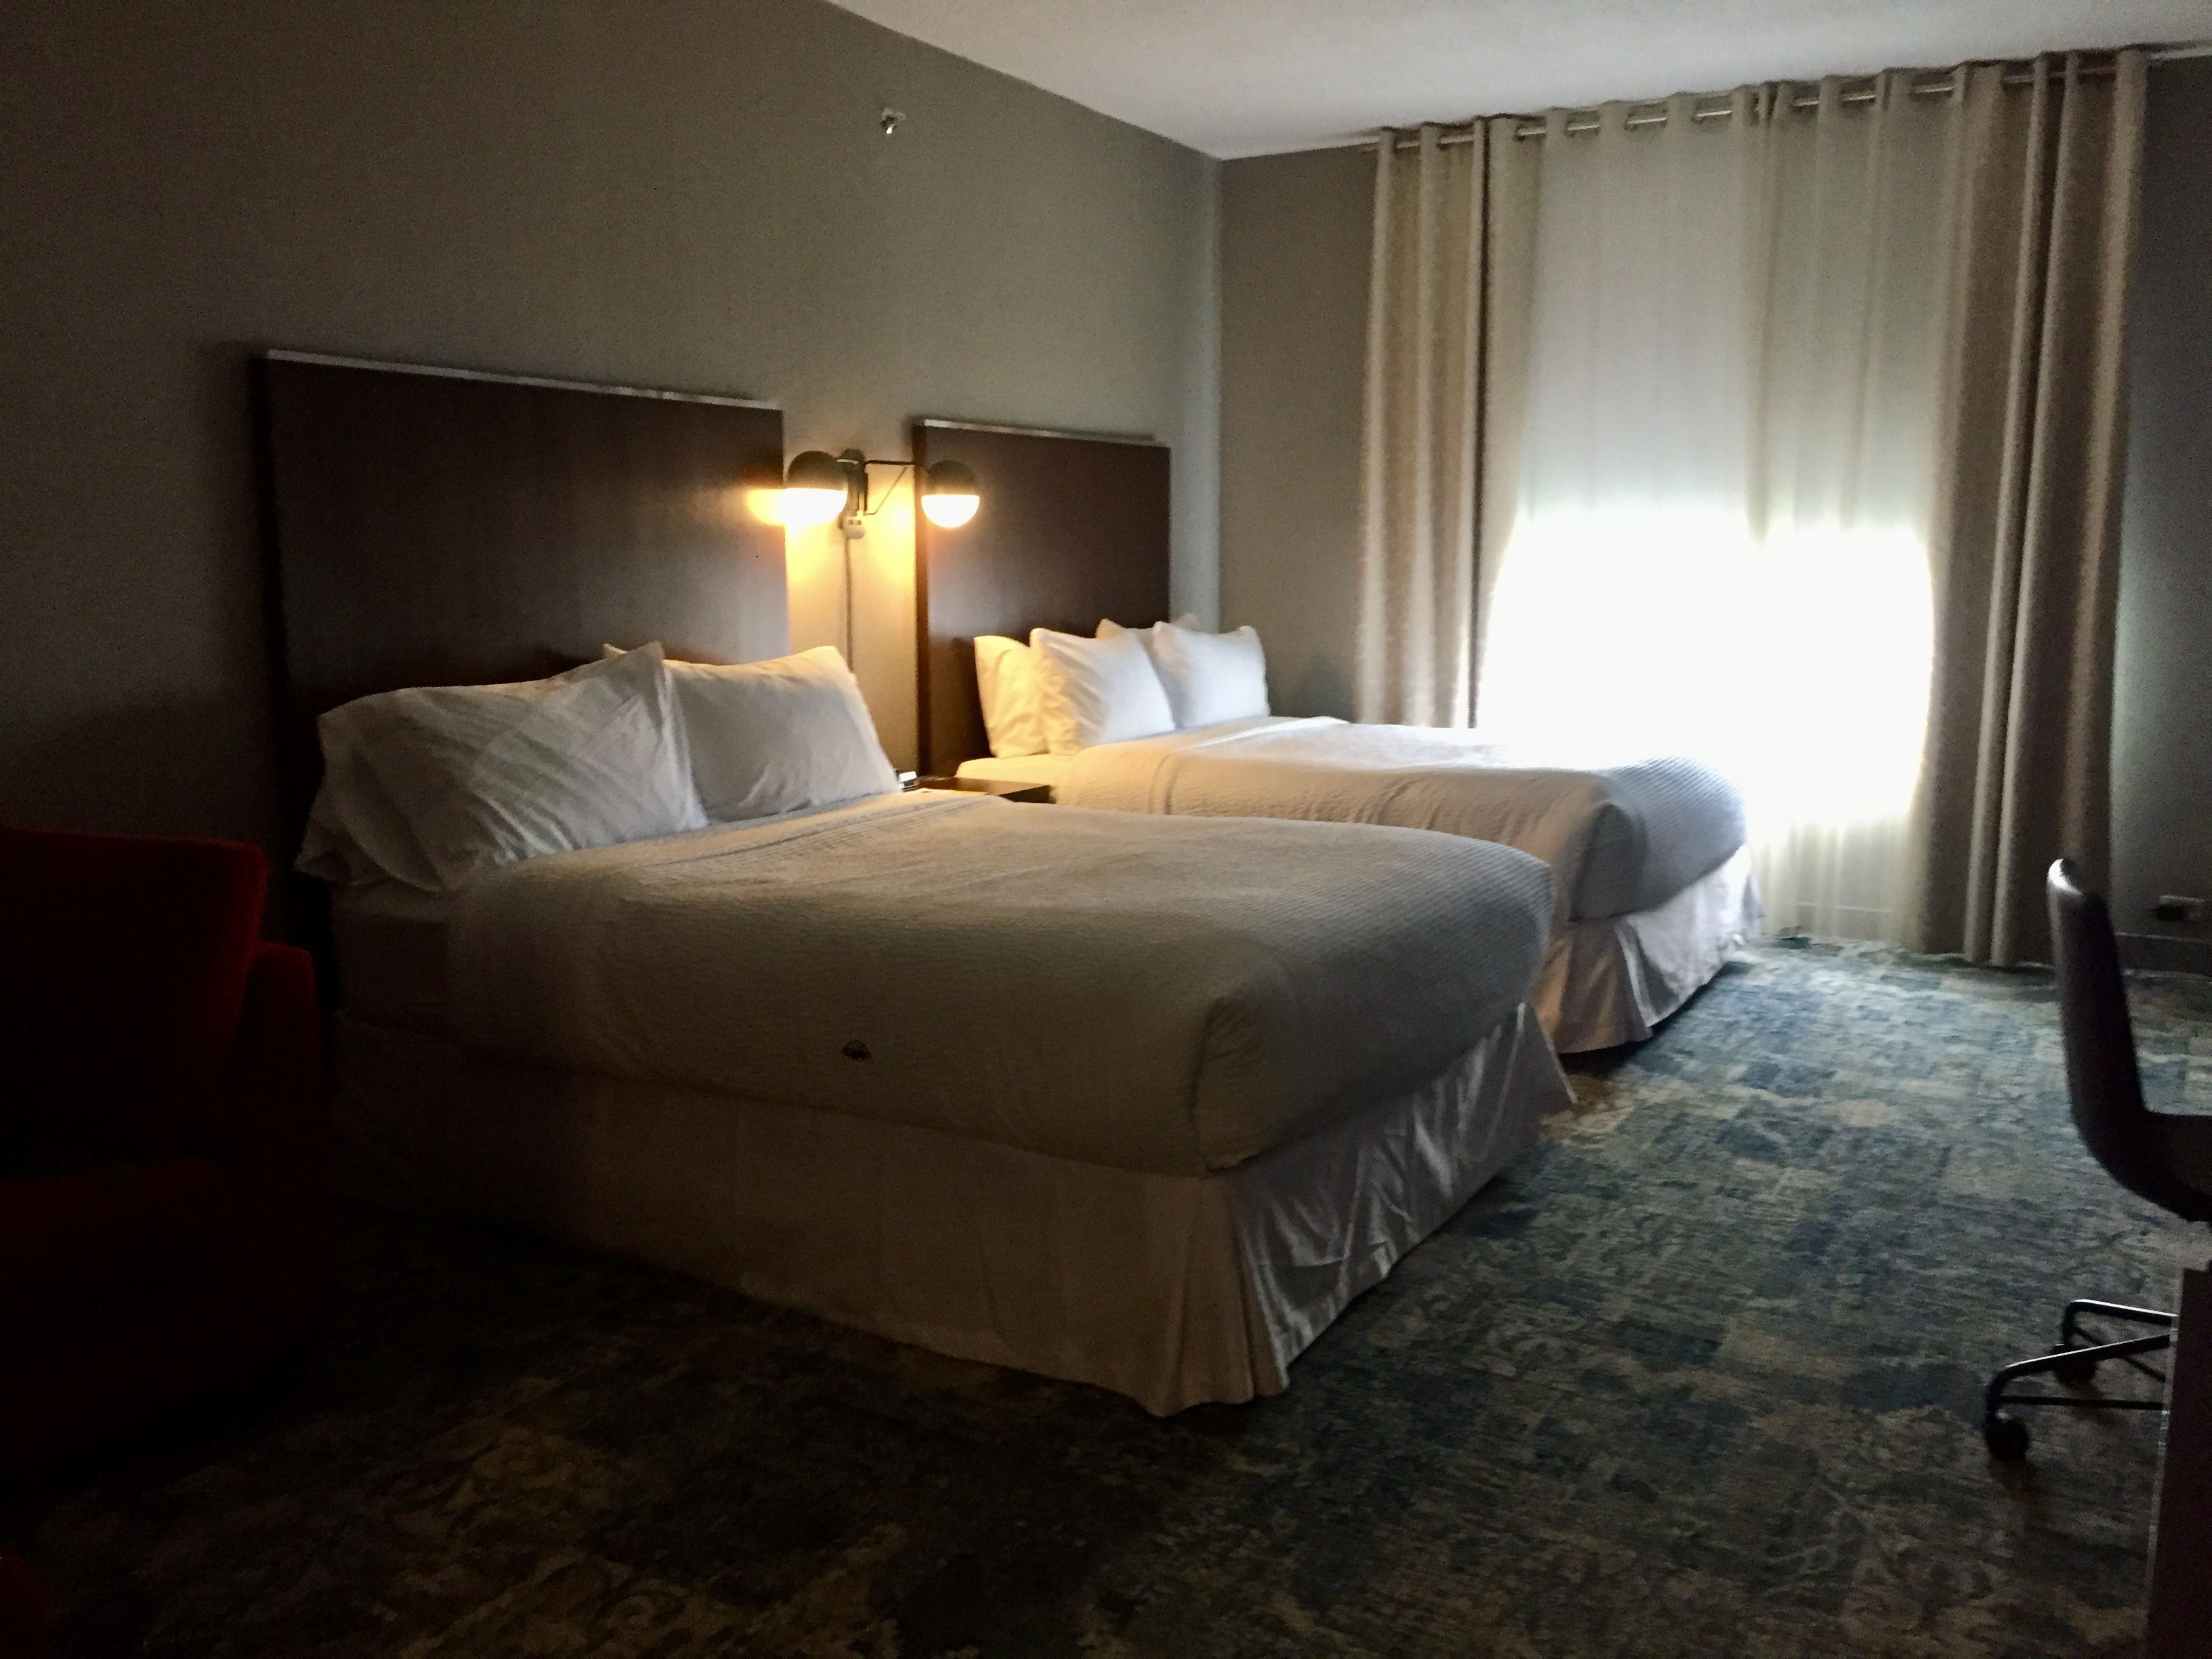 2019 - December - Four Points by Sheraton Dixie Rd - Upgraded room to a double queen suite!